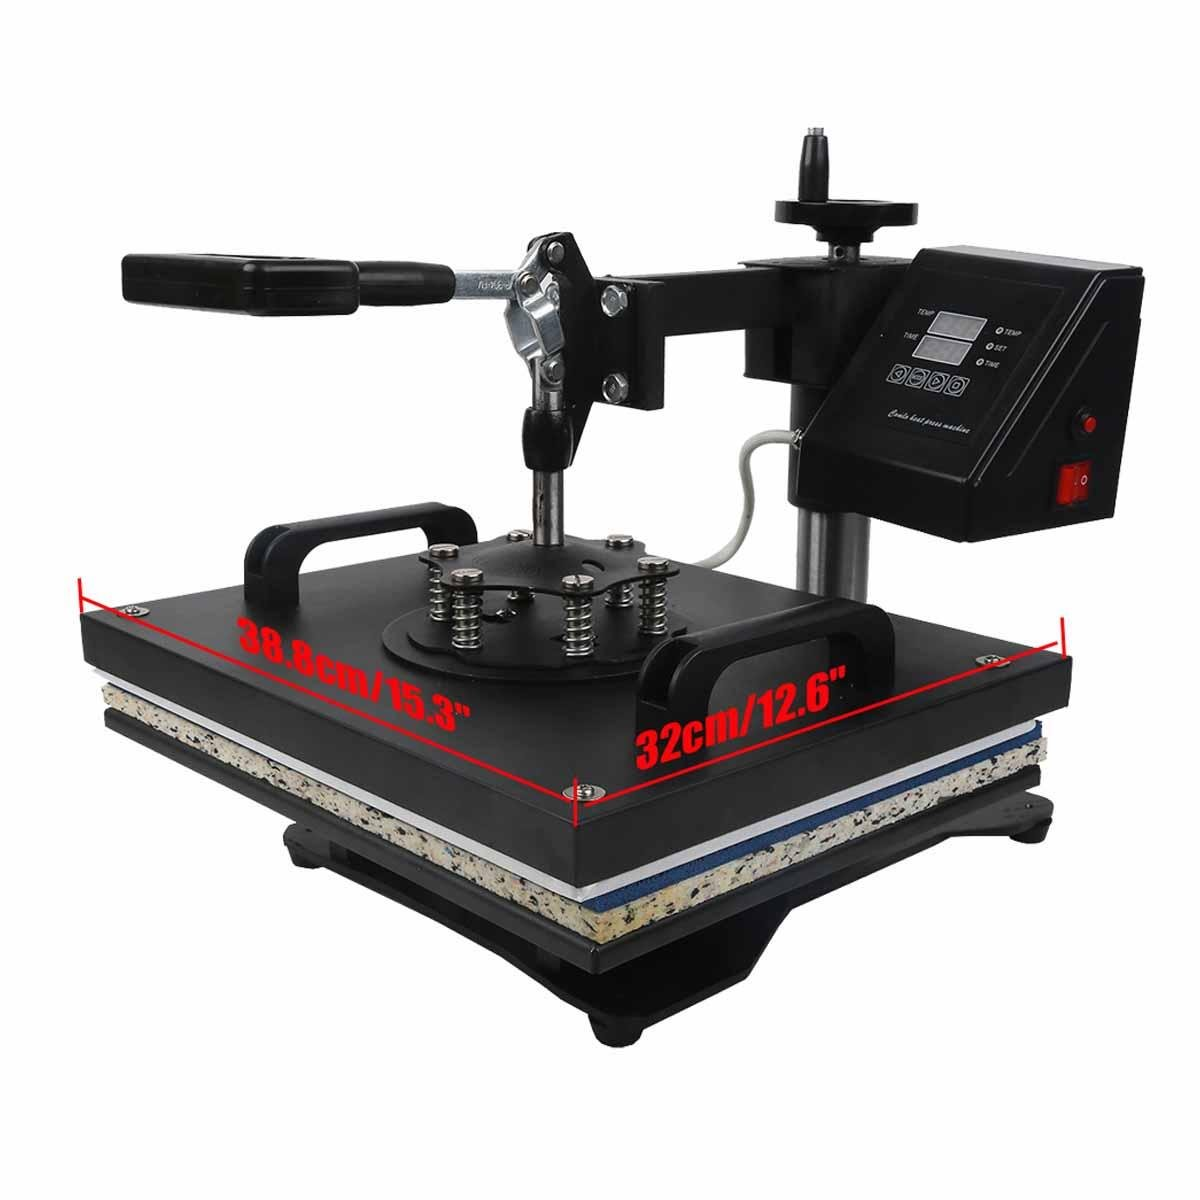 TC-Home Heat Press 8 in 1 Multifunction Sublimation Heat Press Machine